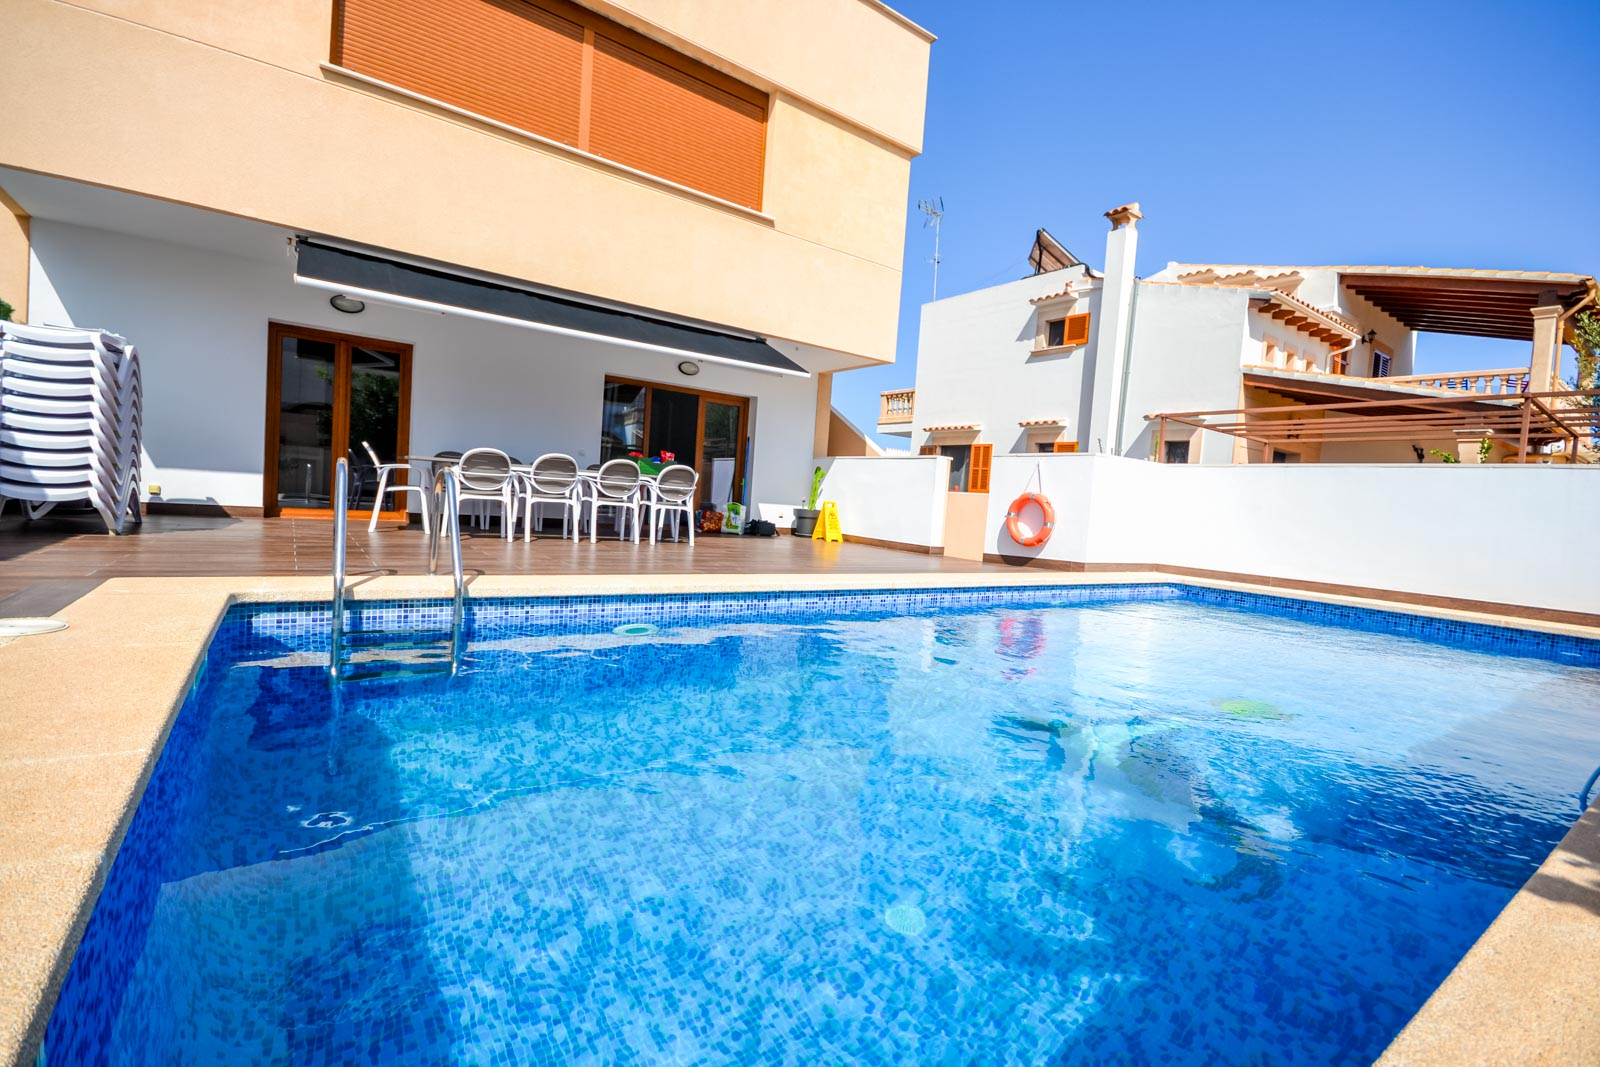 House in Portocolom with swimming pool and 2 apartments